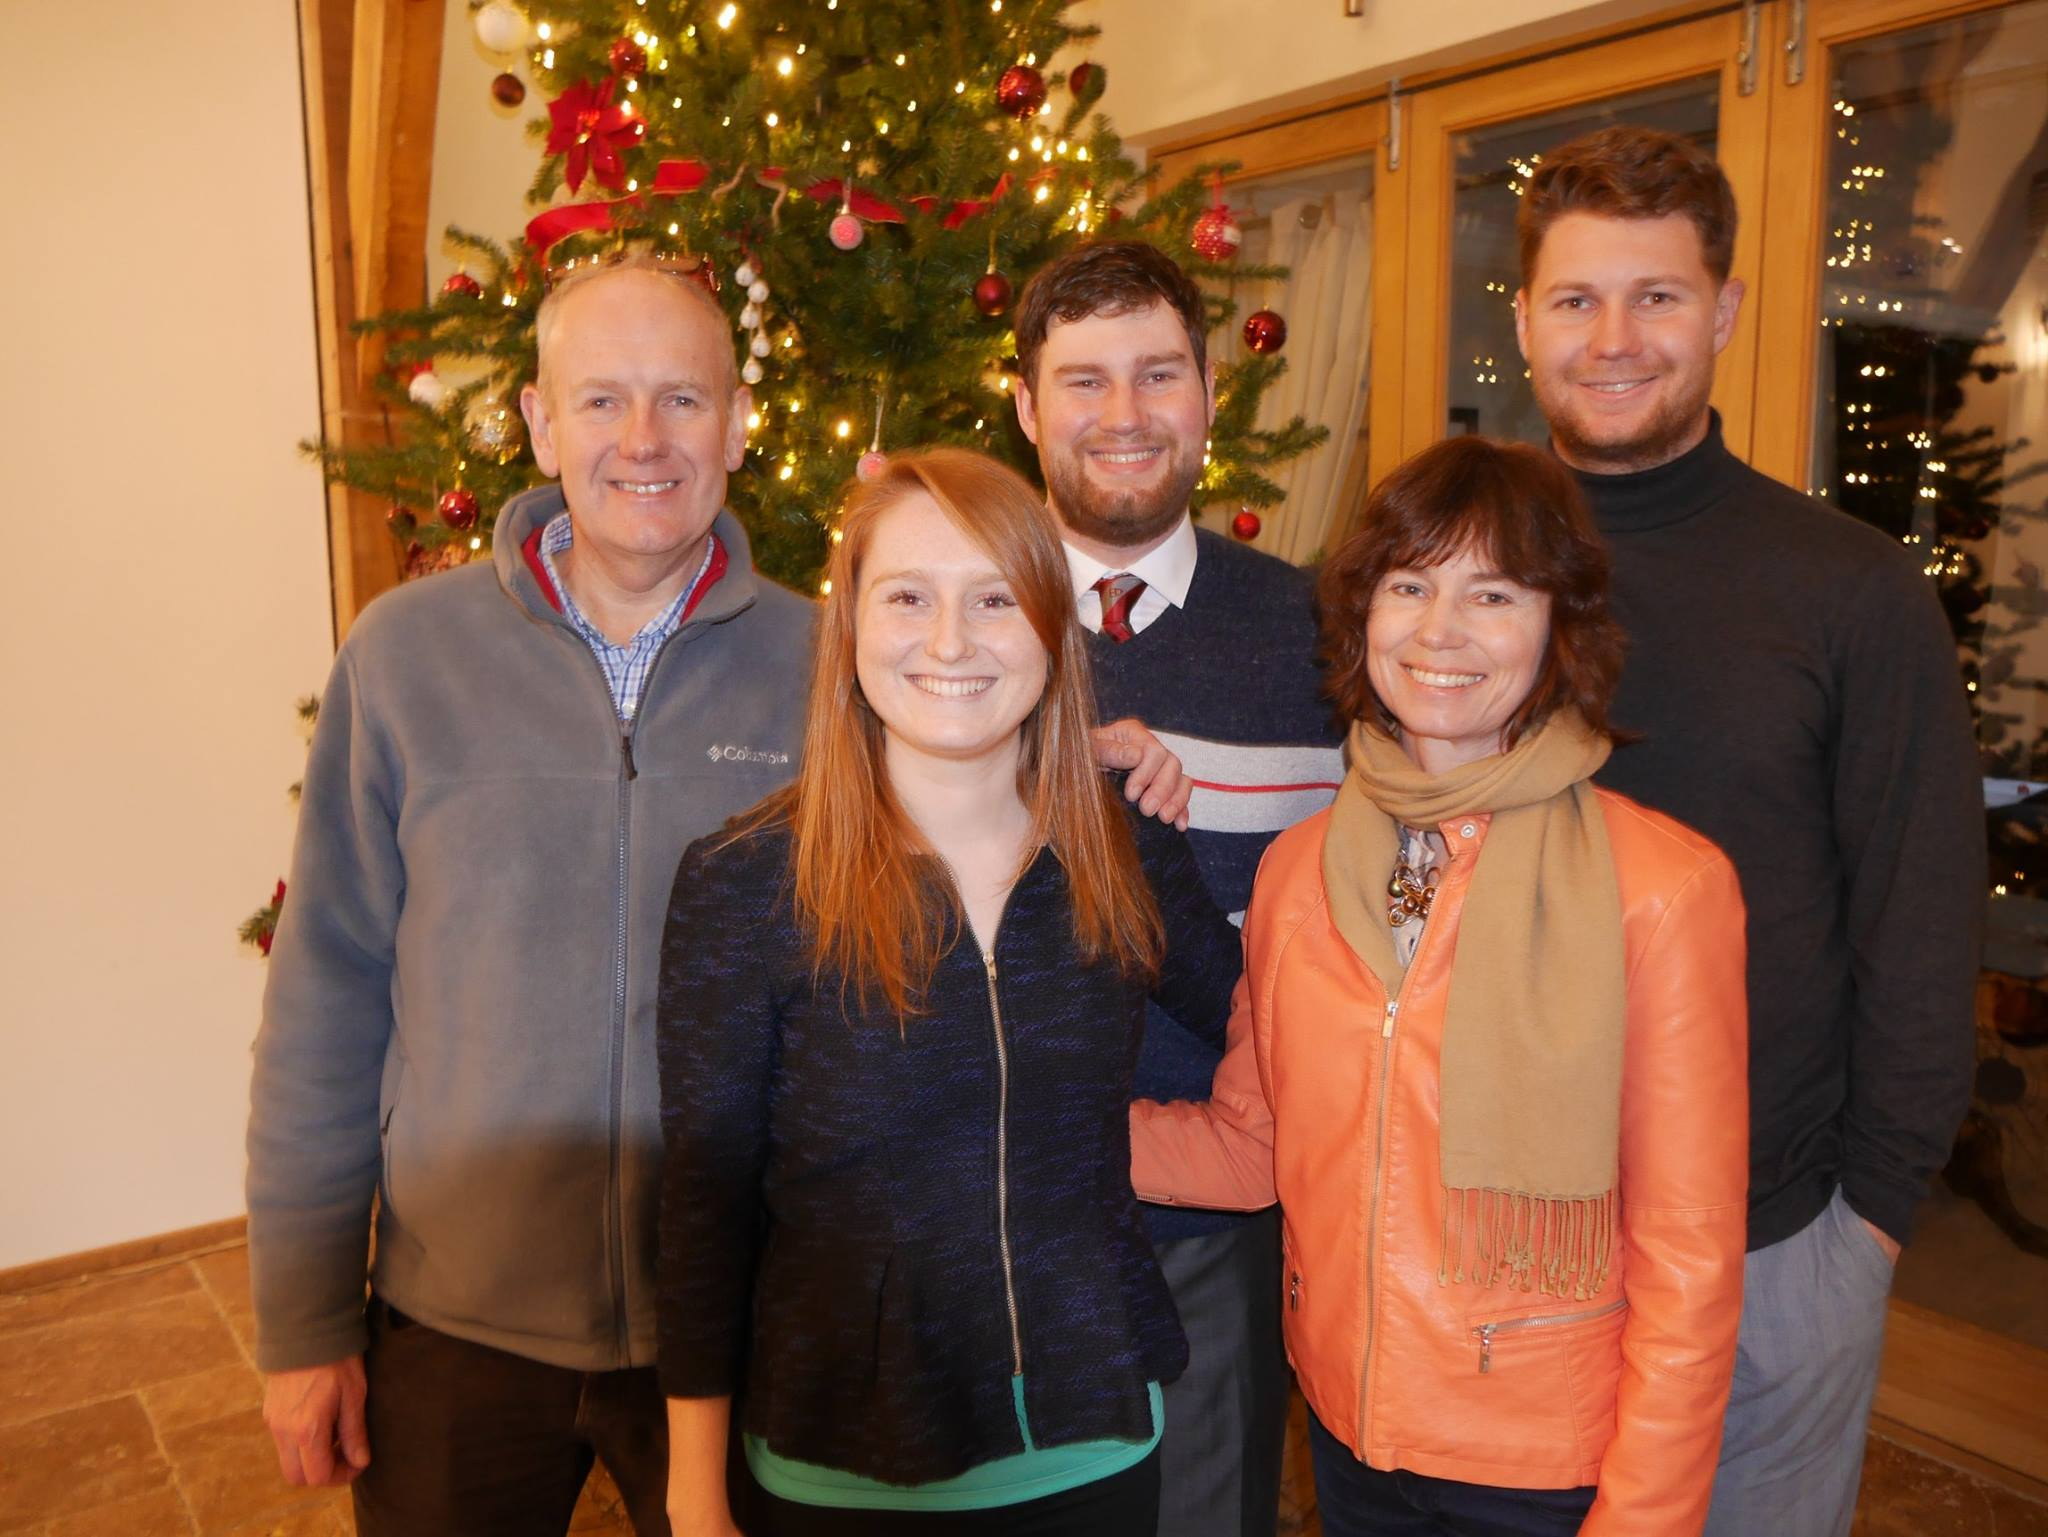 Sian and Martyn with their children in 2015, a year after they arrived in France.